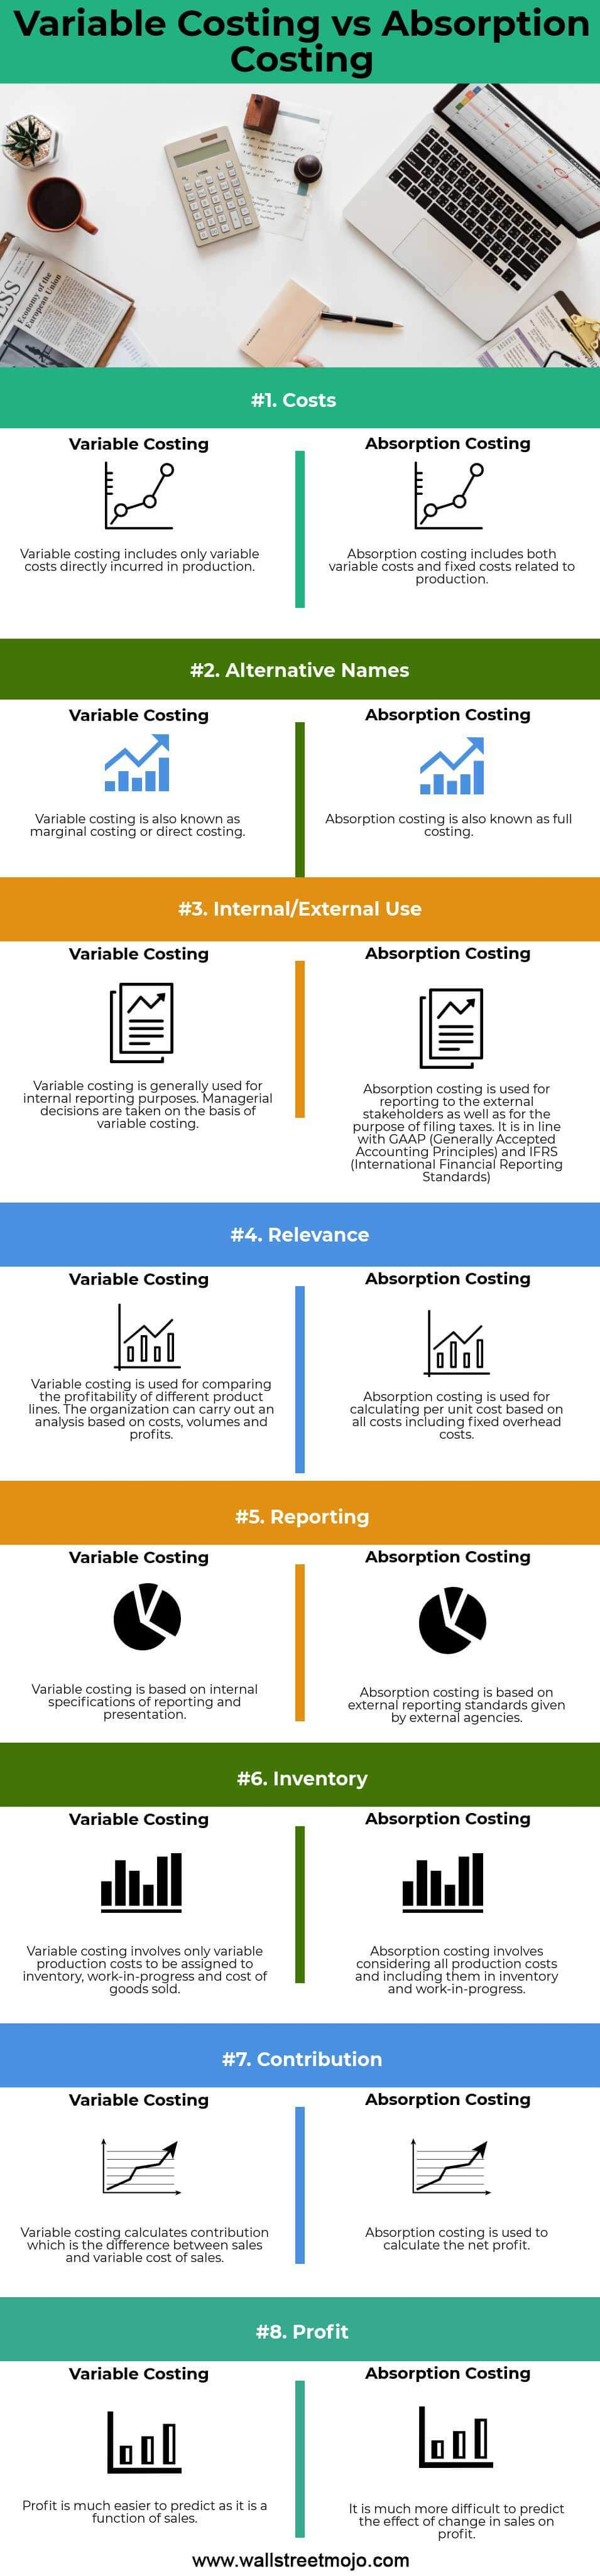 Variable-Costing-vs-Absorption-Costing-info1